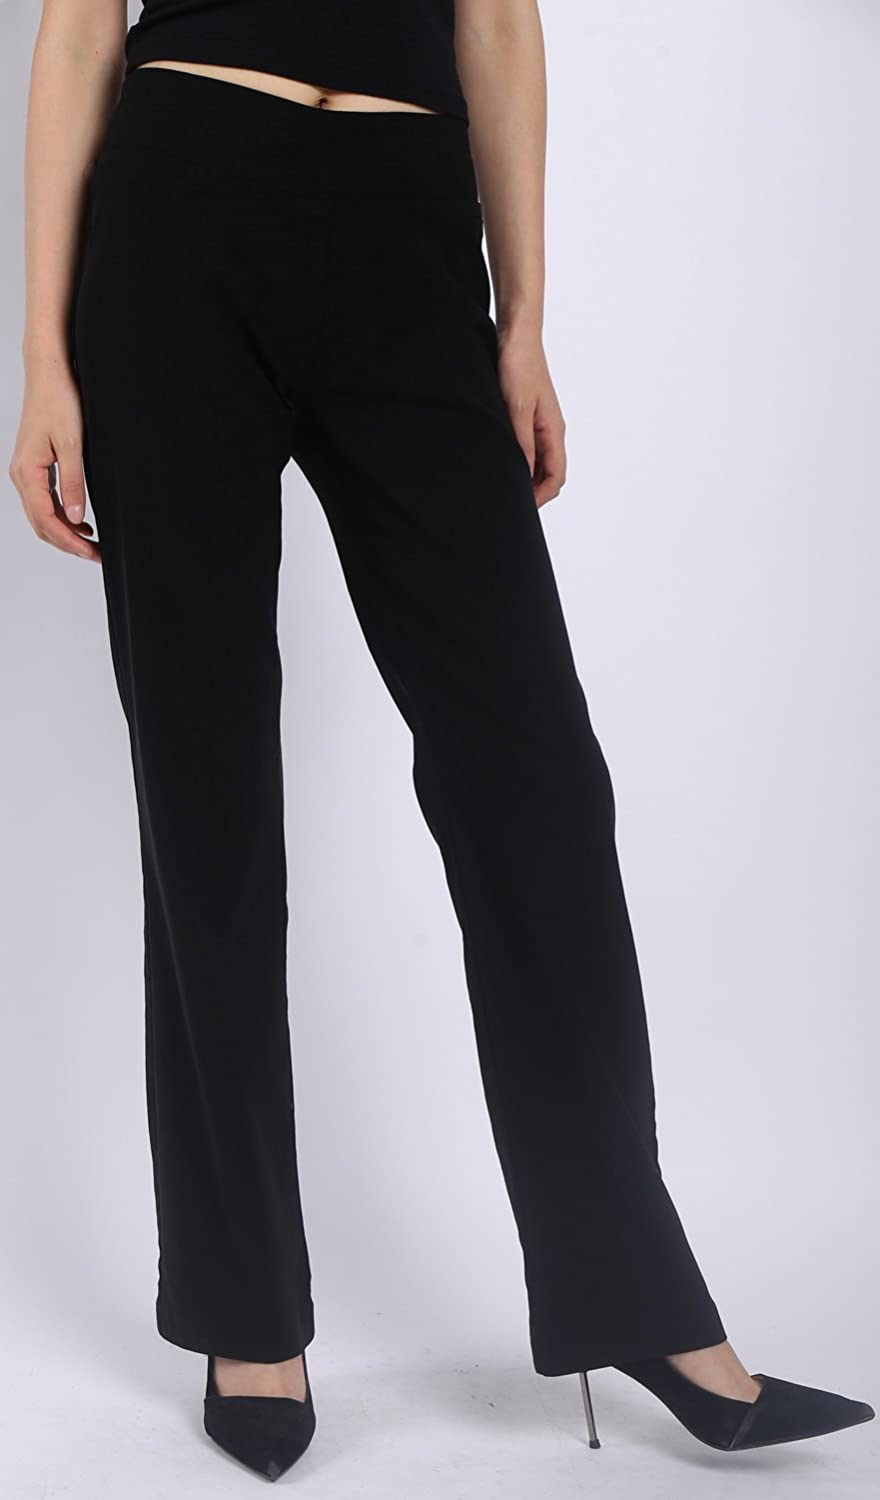 e959754f2d4 Foucome Women Trousers-Slim or Bootcut Stretch High Waist Pants with All  Day Comfort Pull On Casual Full Elasticated Waist Bottoms Plus Sizes Black   ...